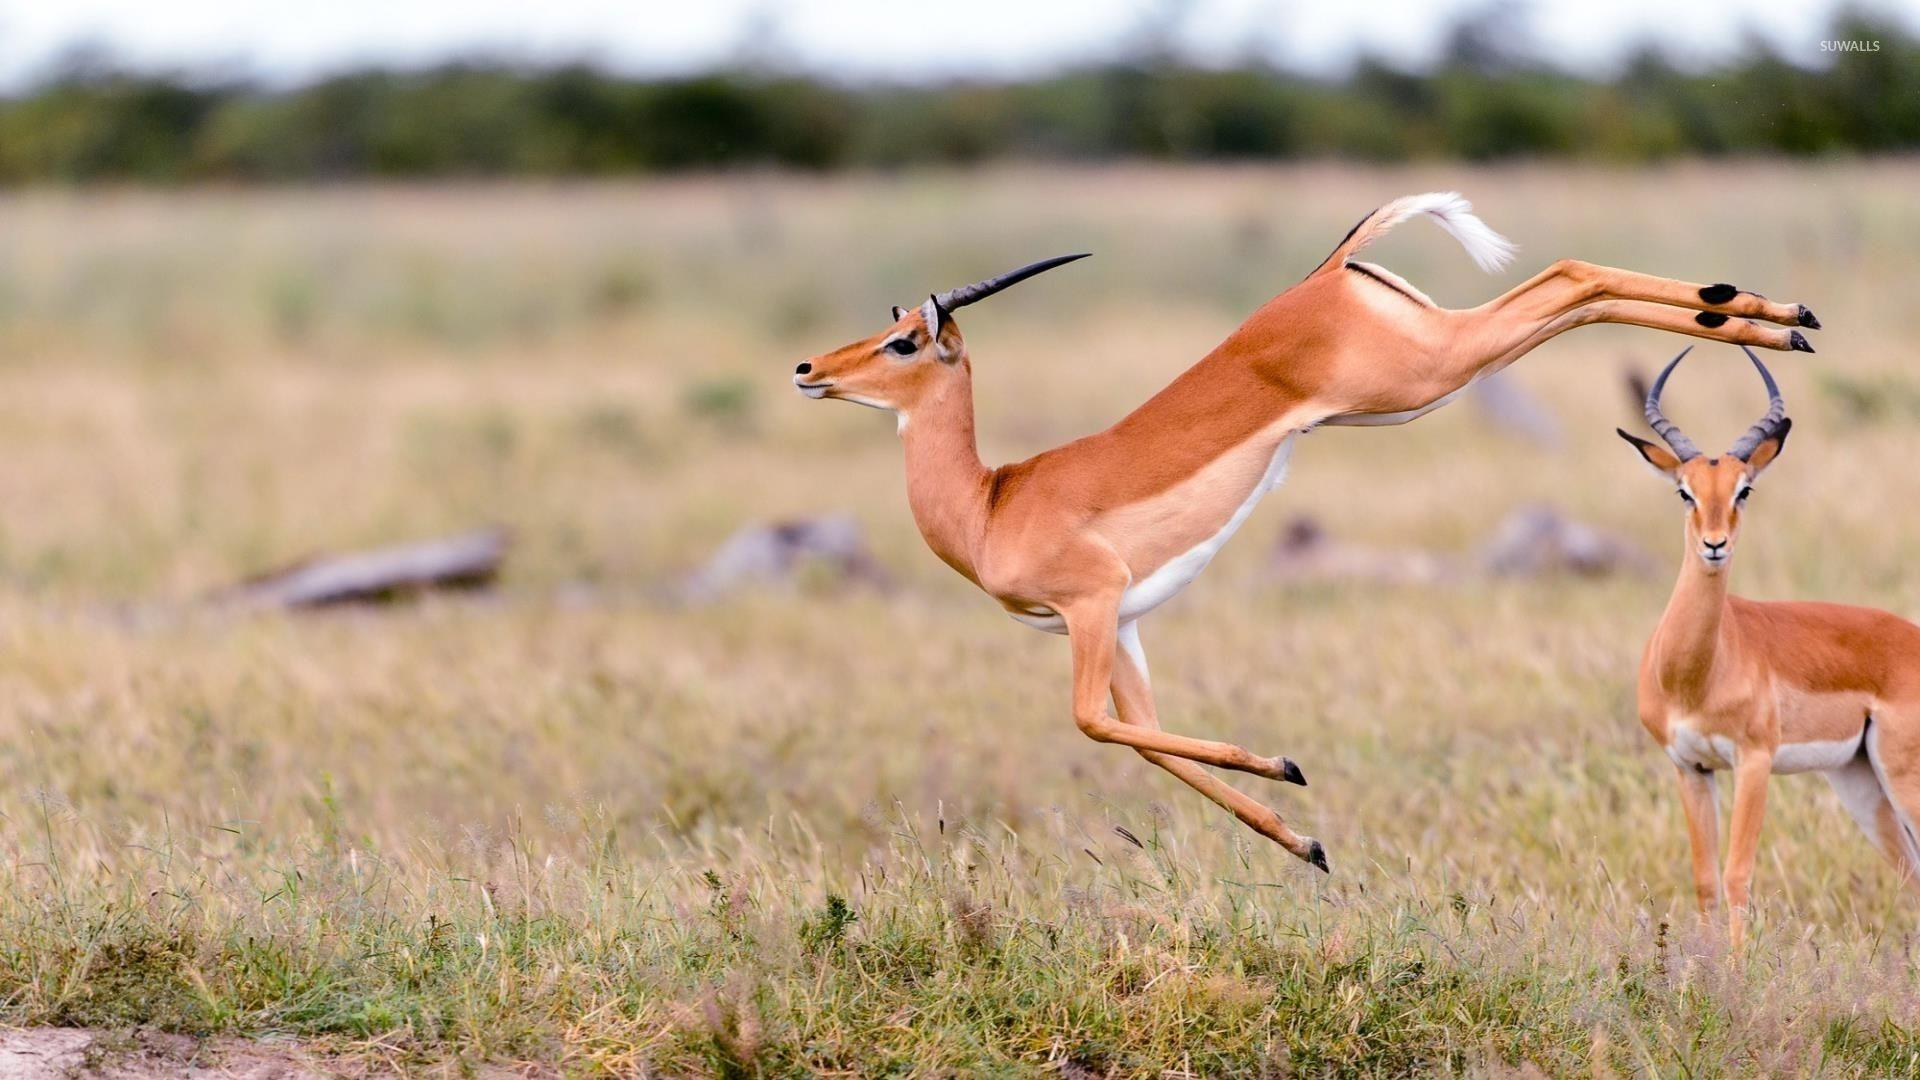 Gazelle wallpaper - Animal wallpapers - #34178